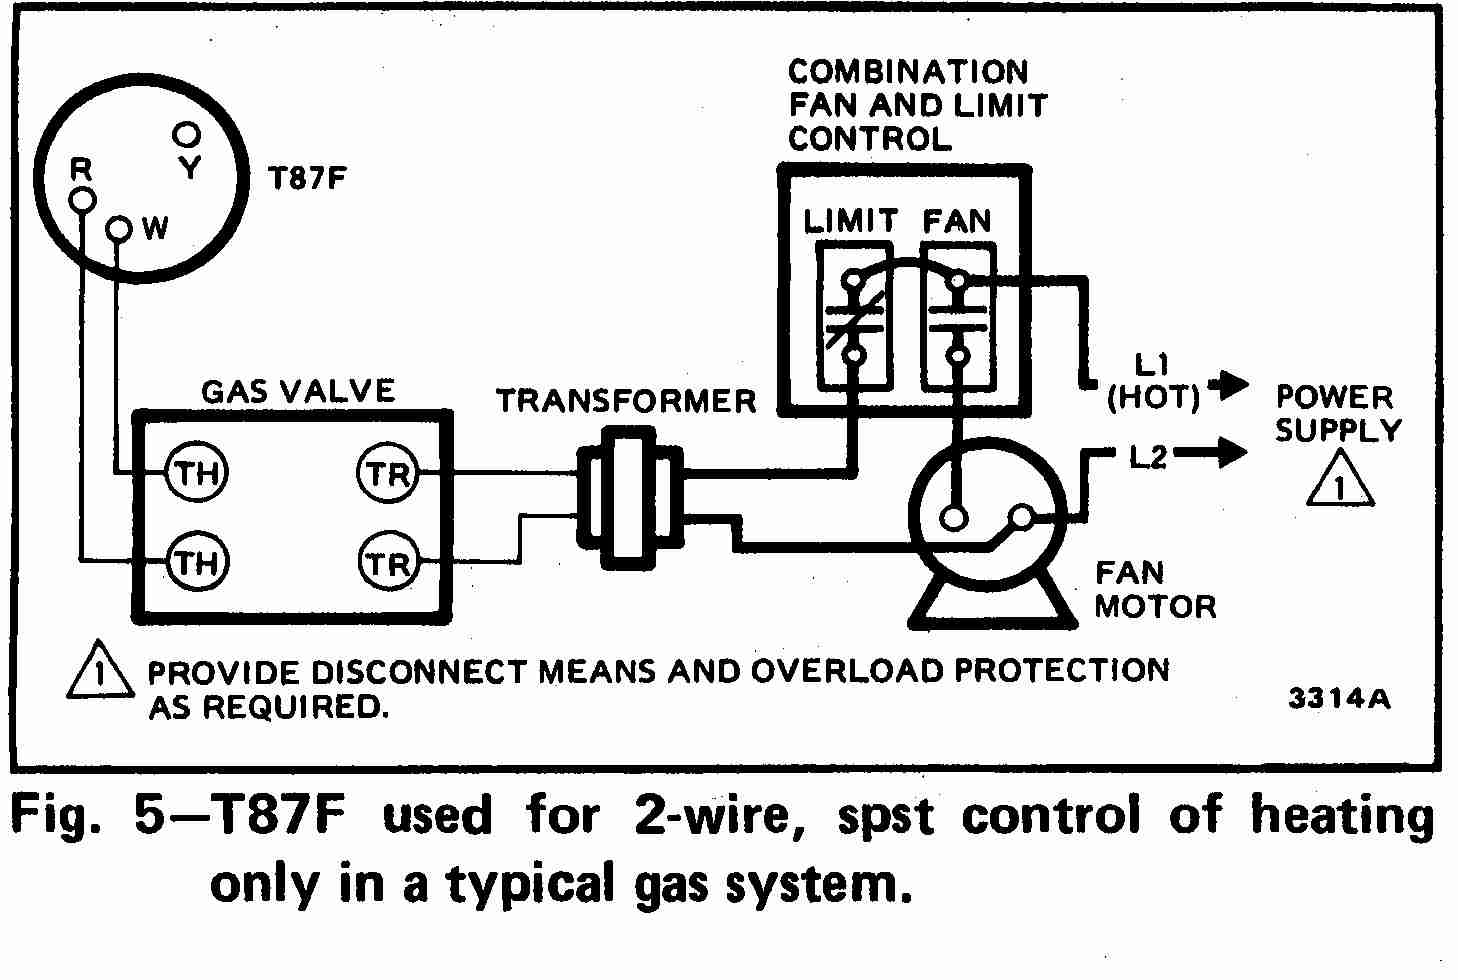 TT_T87F_0002_2Wg_DJF room thermostat wiring diagrams for hvac systems honeywell room thermostat wiring diagram at gsmportal.co